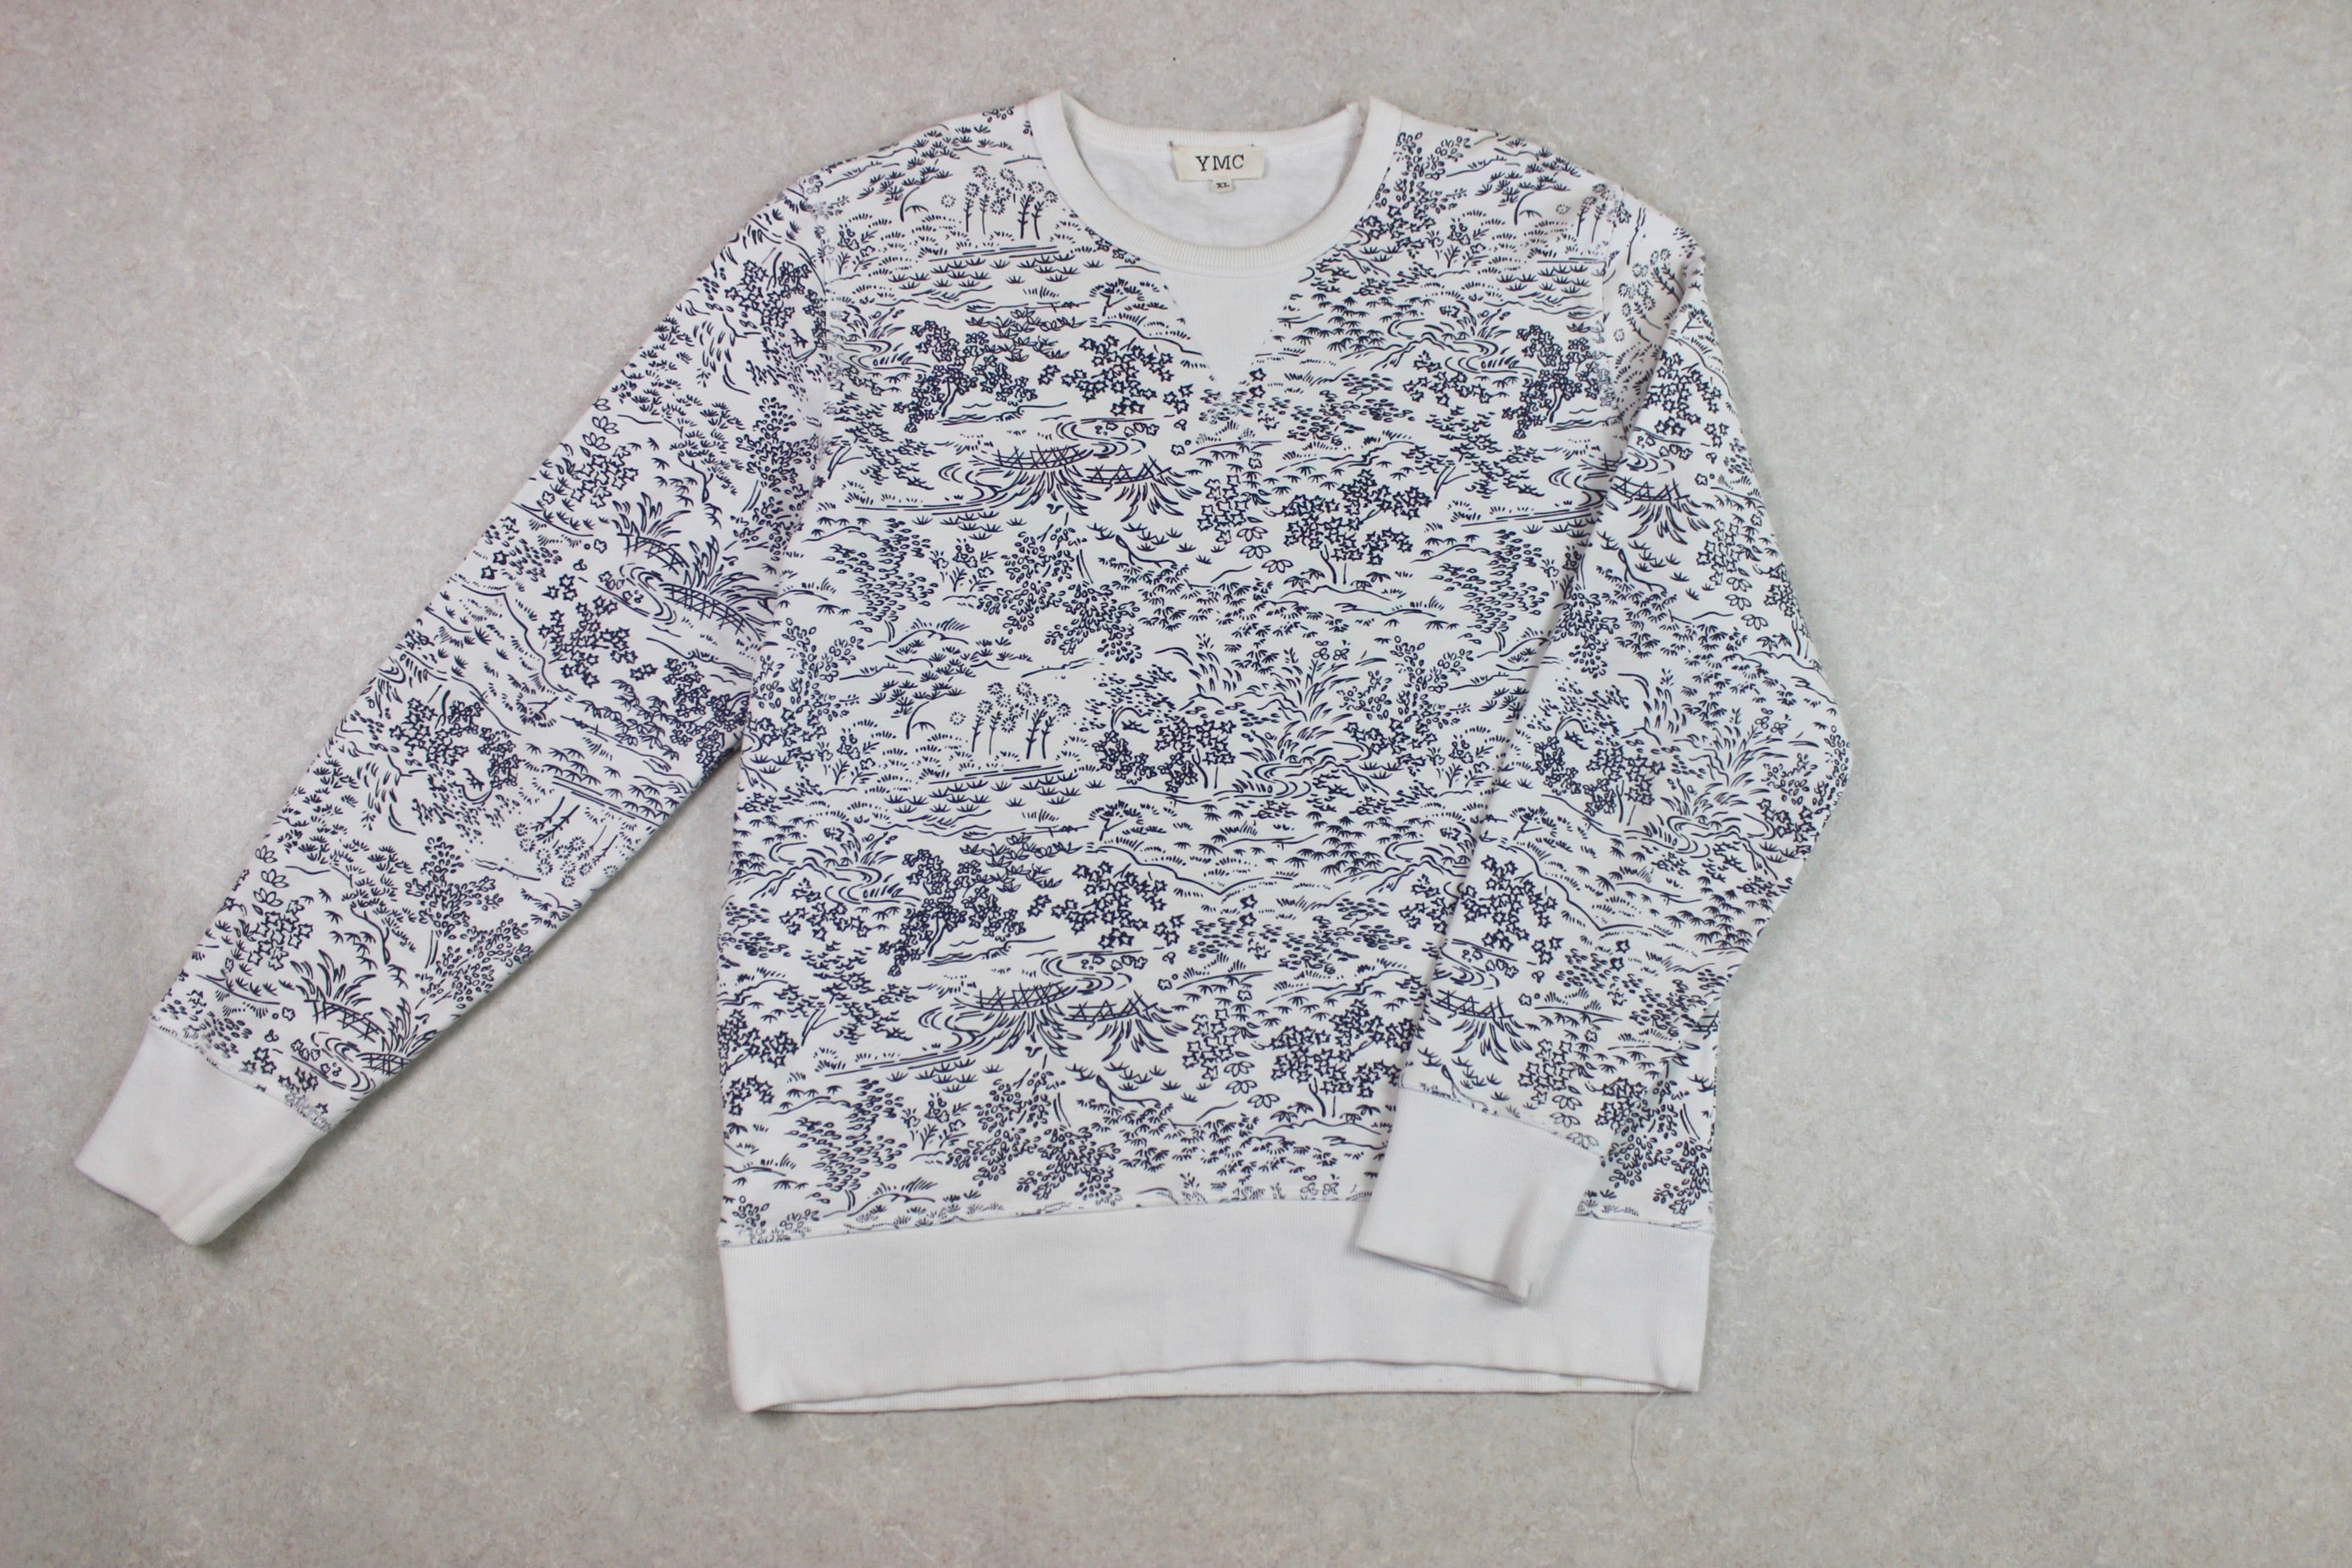 YMC - Sweatshirt Jumper - Cream/Off White - Extra Large